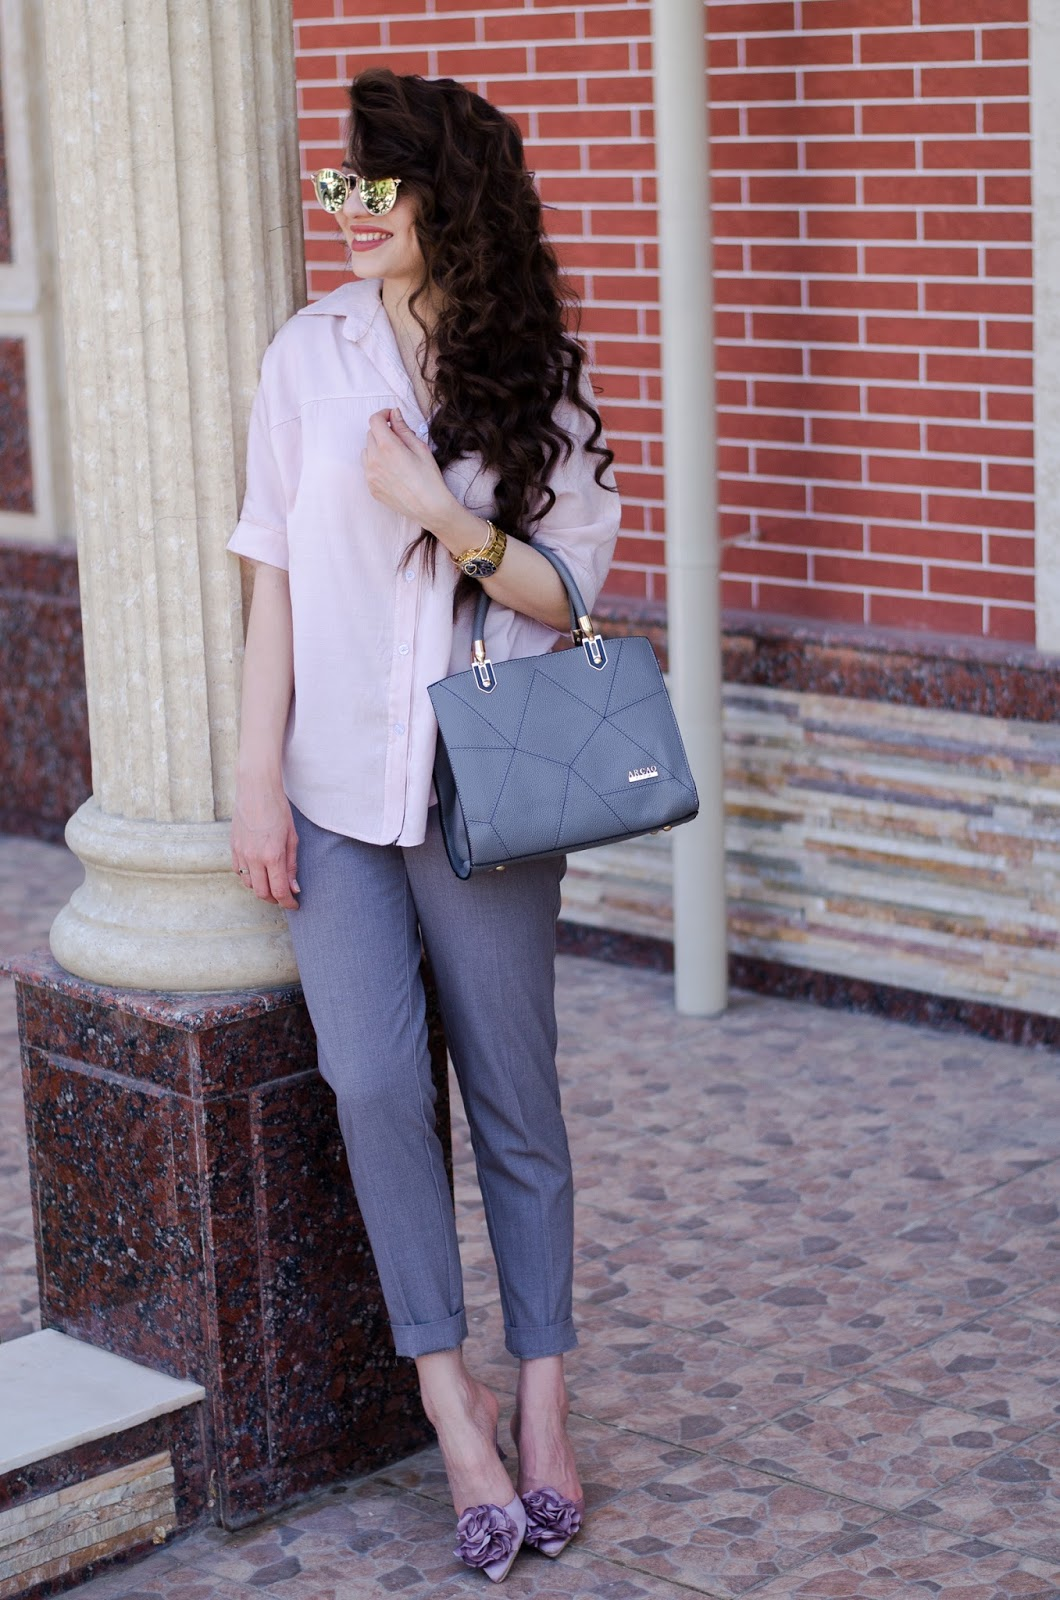 fashion blogger diyorasnotes diyora beta mules grey pants pink shirt curly hair smart casual